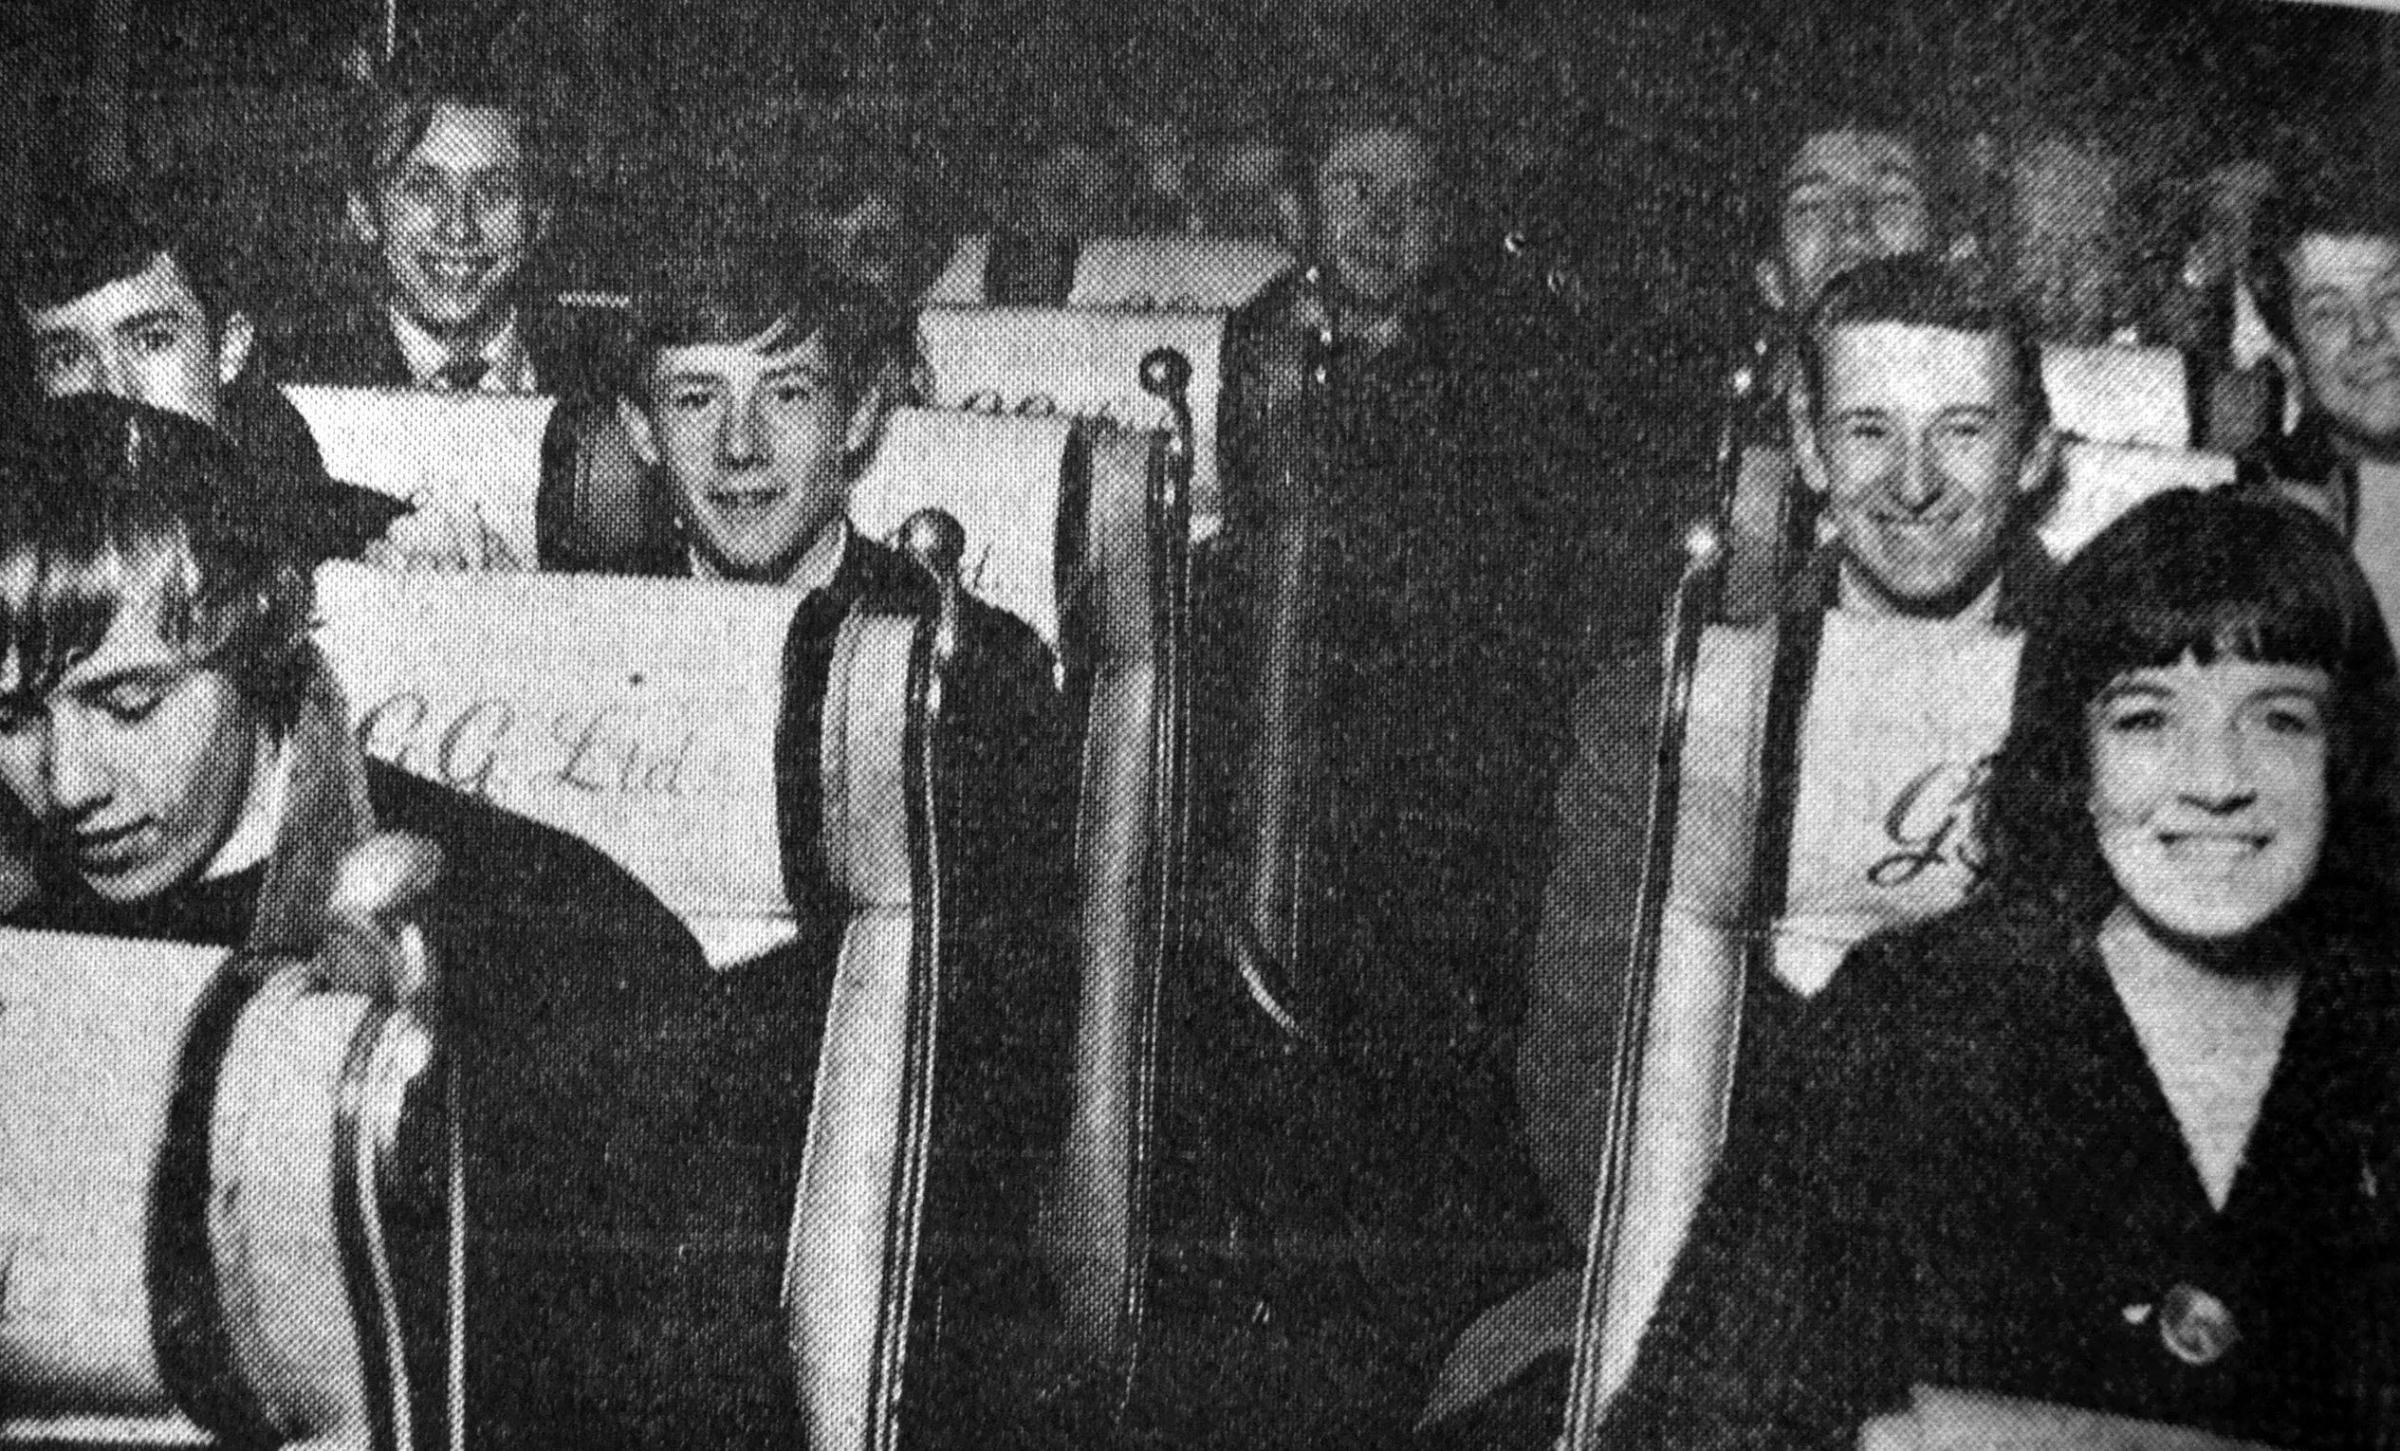 TICKET TO RIDE: These teenagers went to see the Beatles